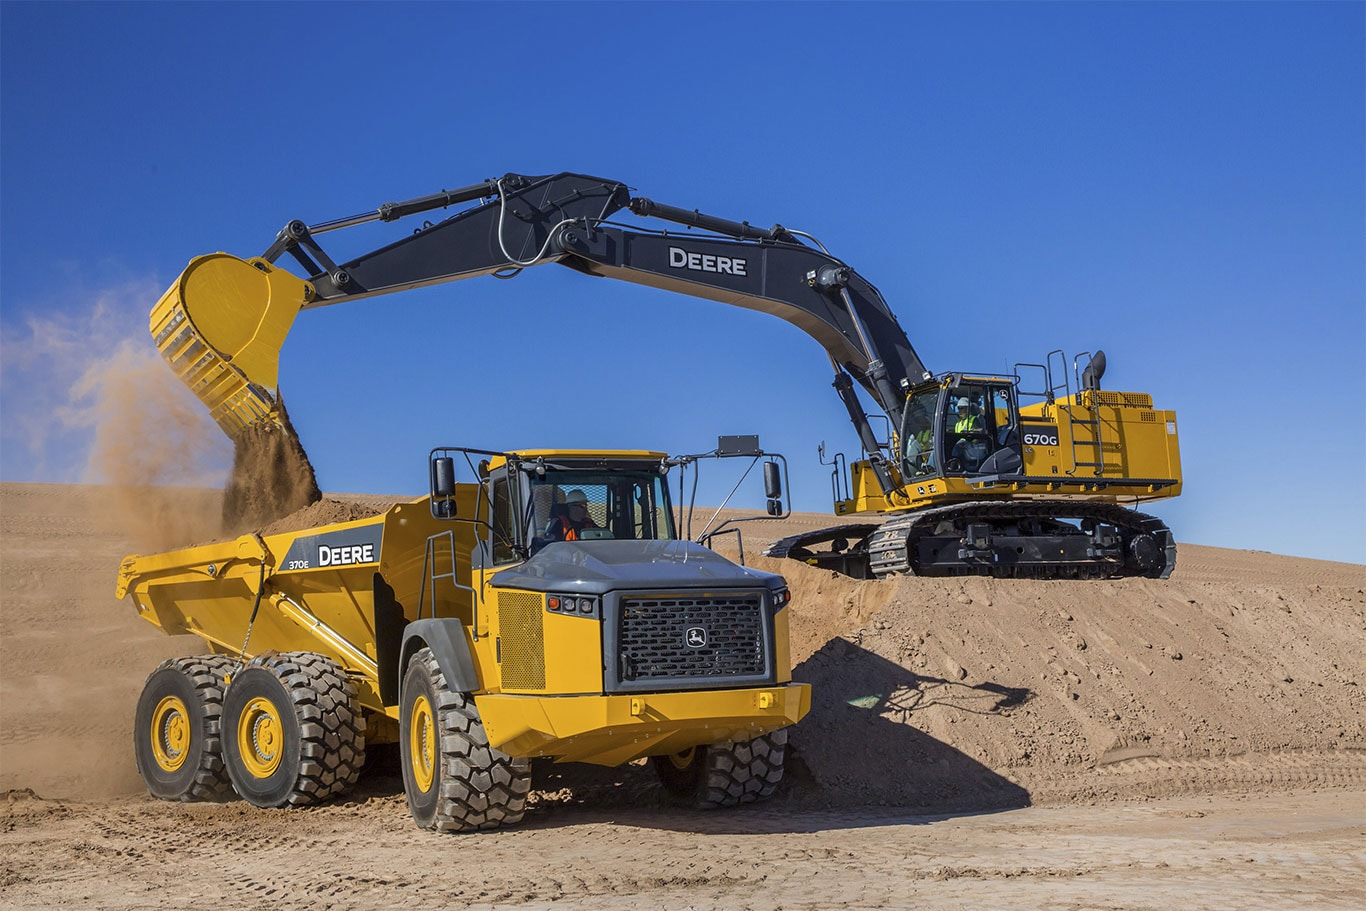 670G LC excavator dumbs a load of dirt into an articulated dump truck